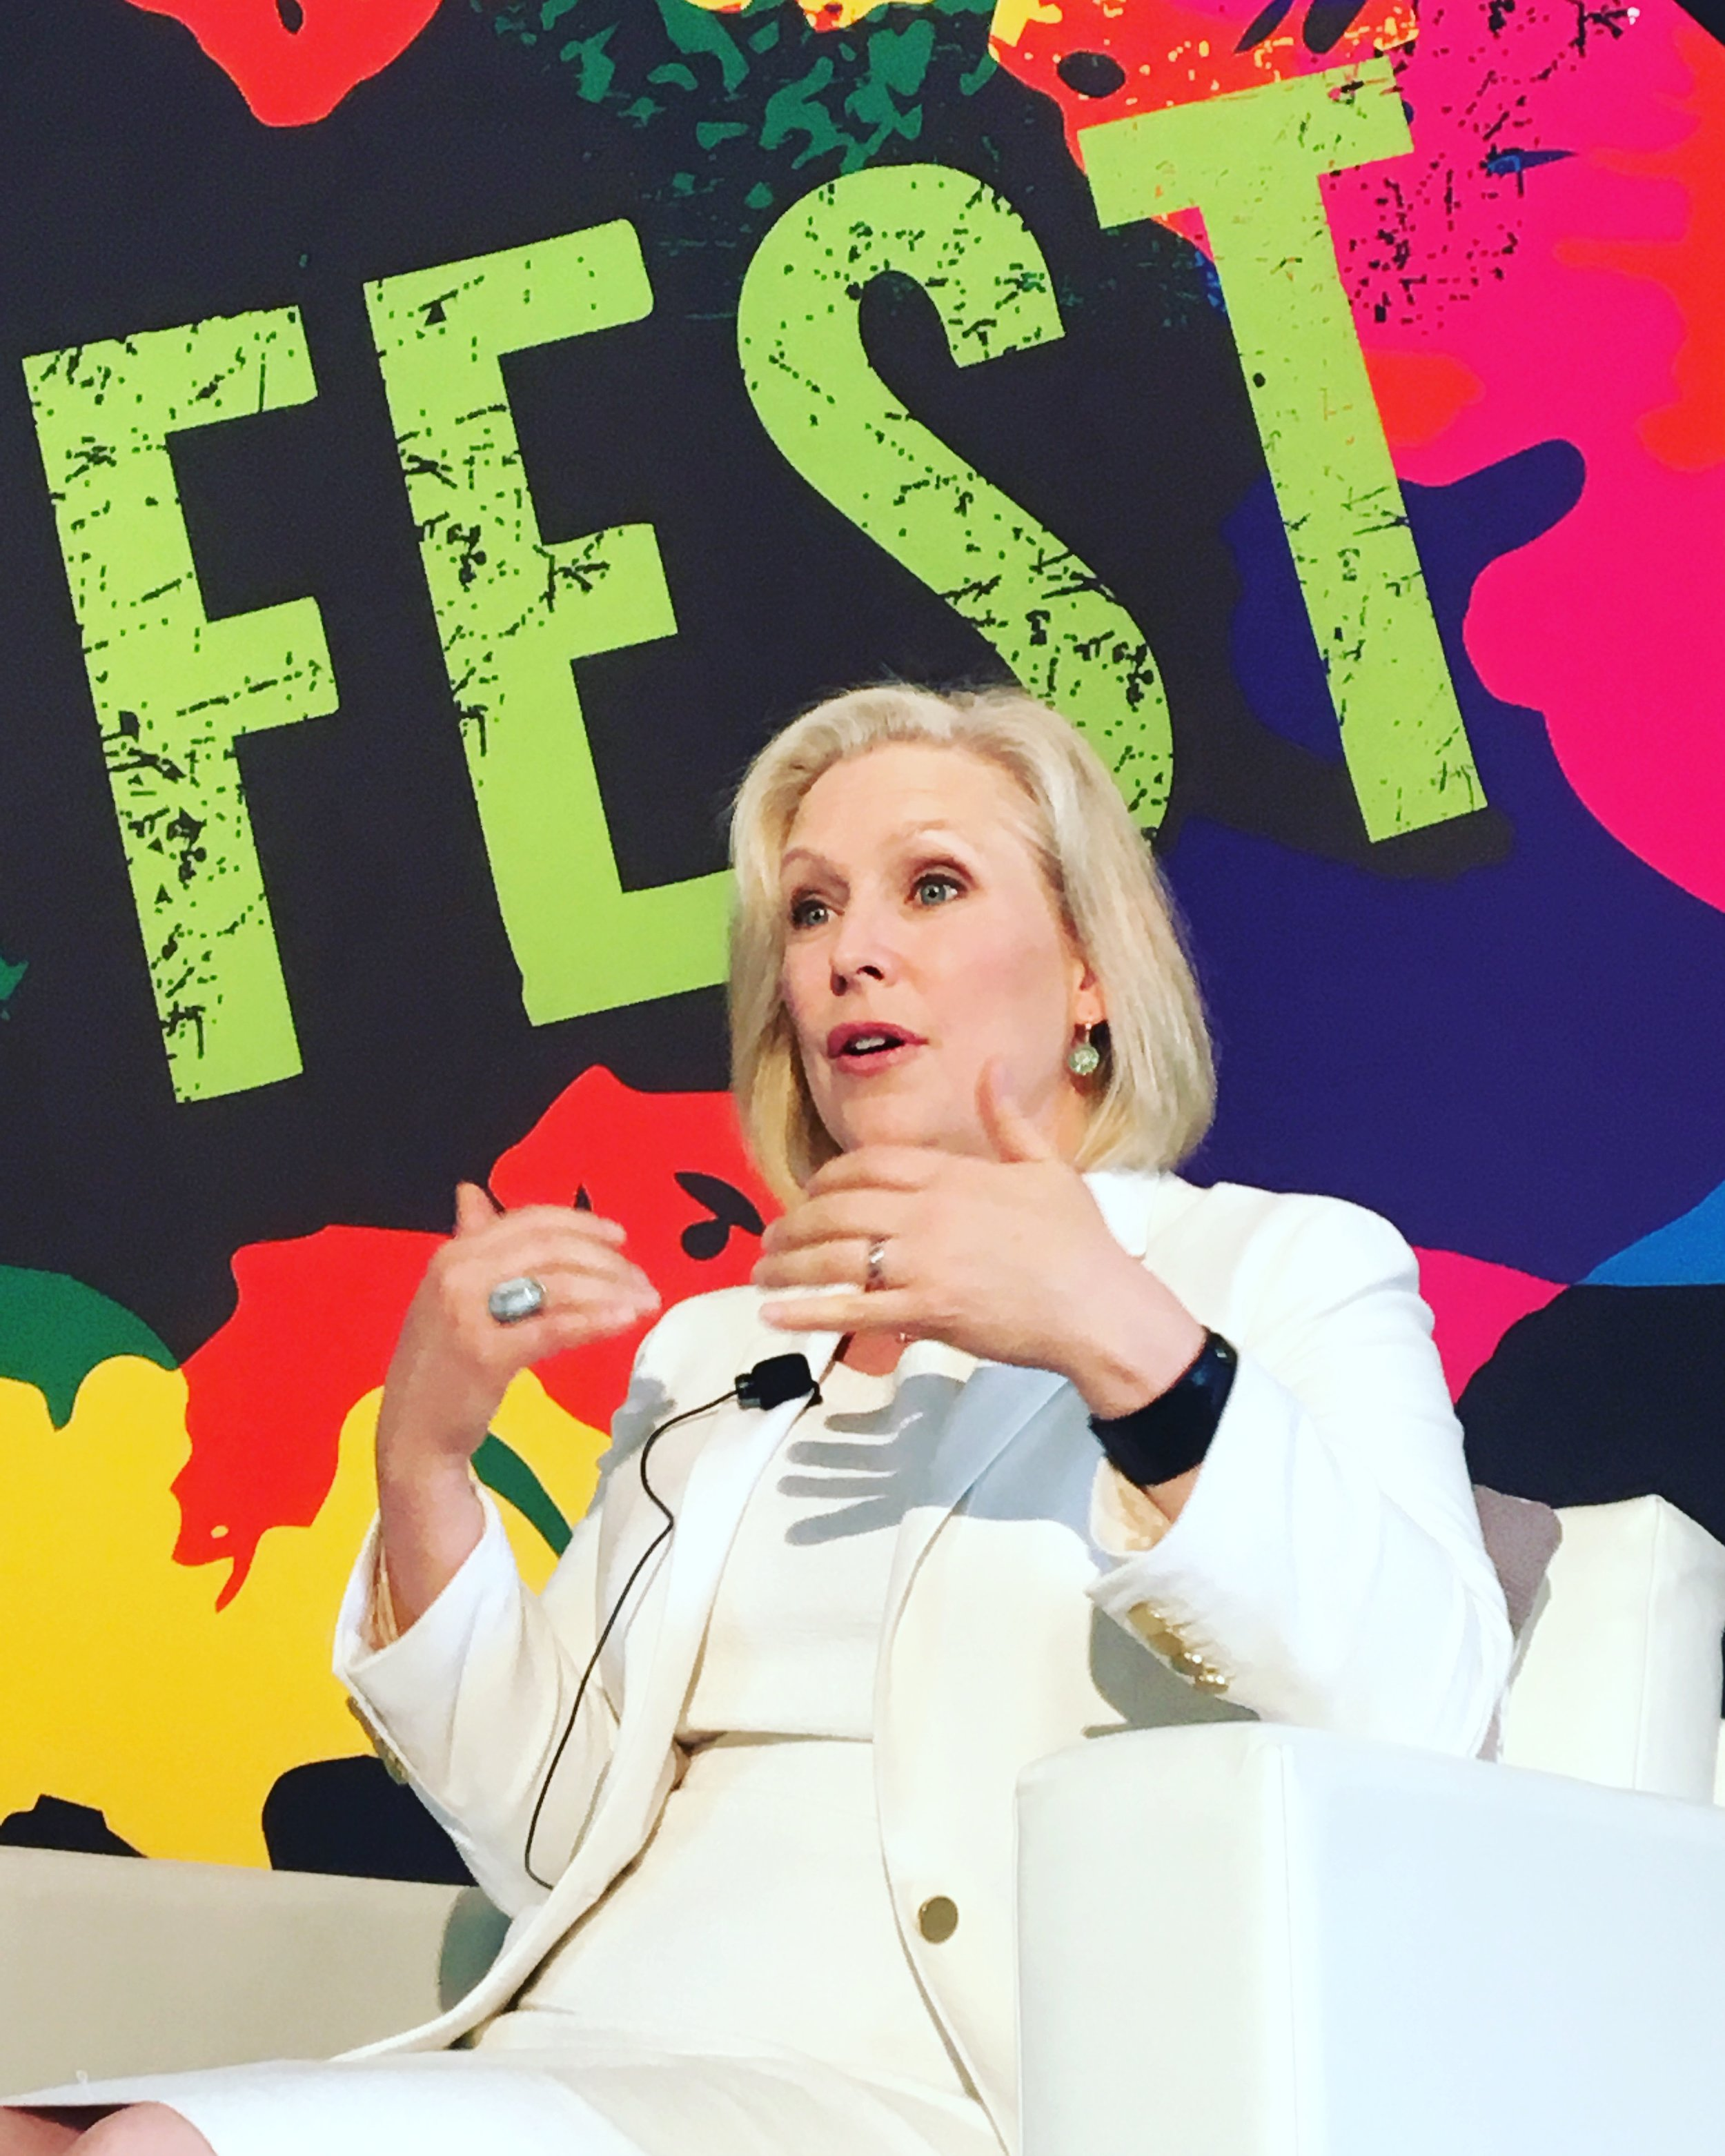 New York State Senator Kirsten Gillibrand discusses Health Care at Ozy Fest Town Hall in Central Park, NYC, July 22, 2017. Photo by Kristen Blush with iPhone 6S.